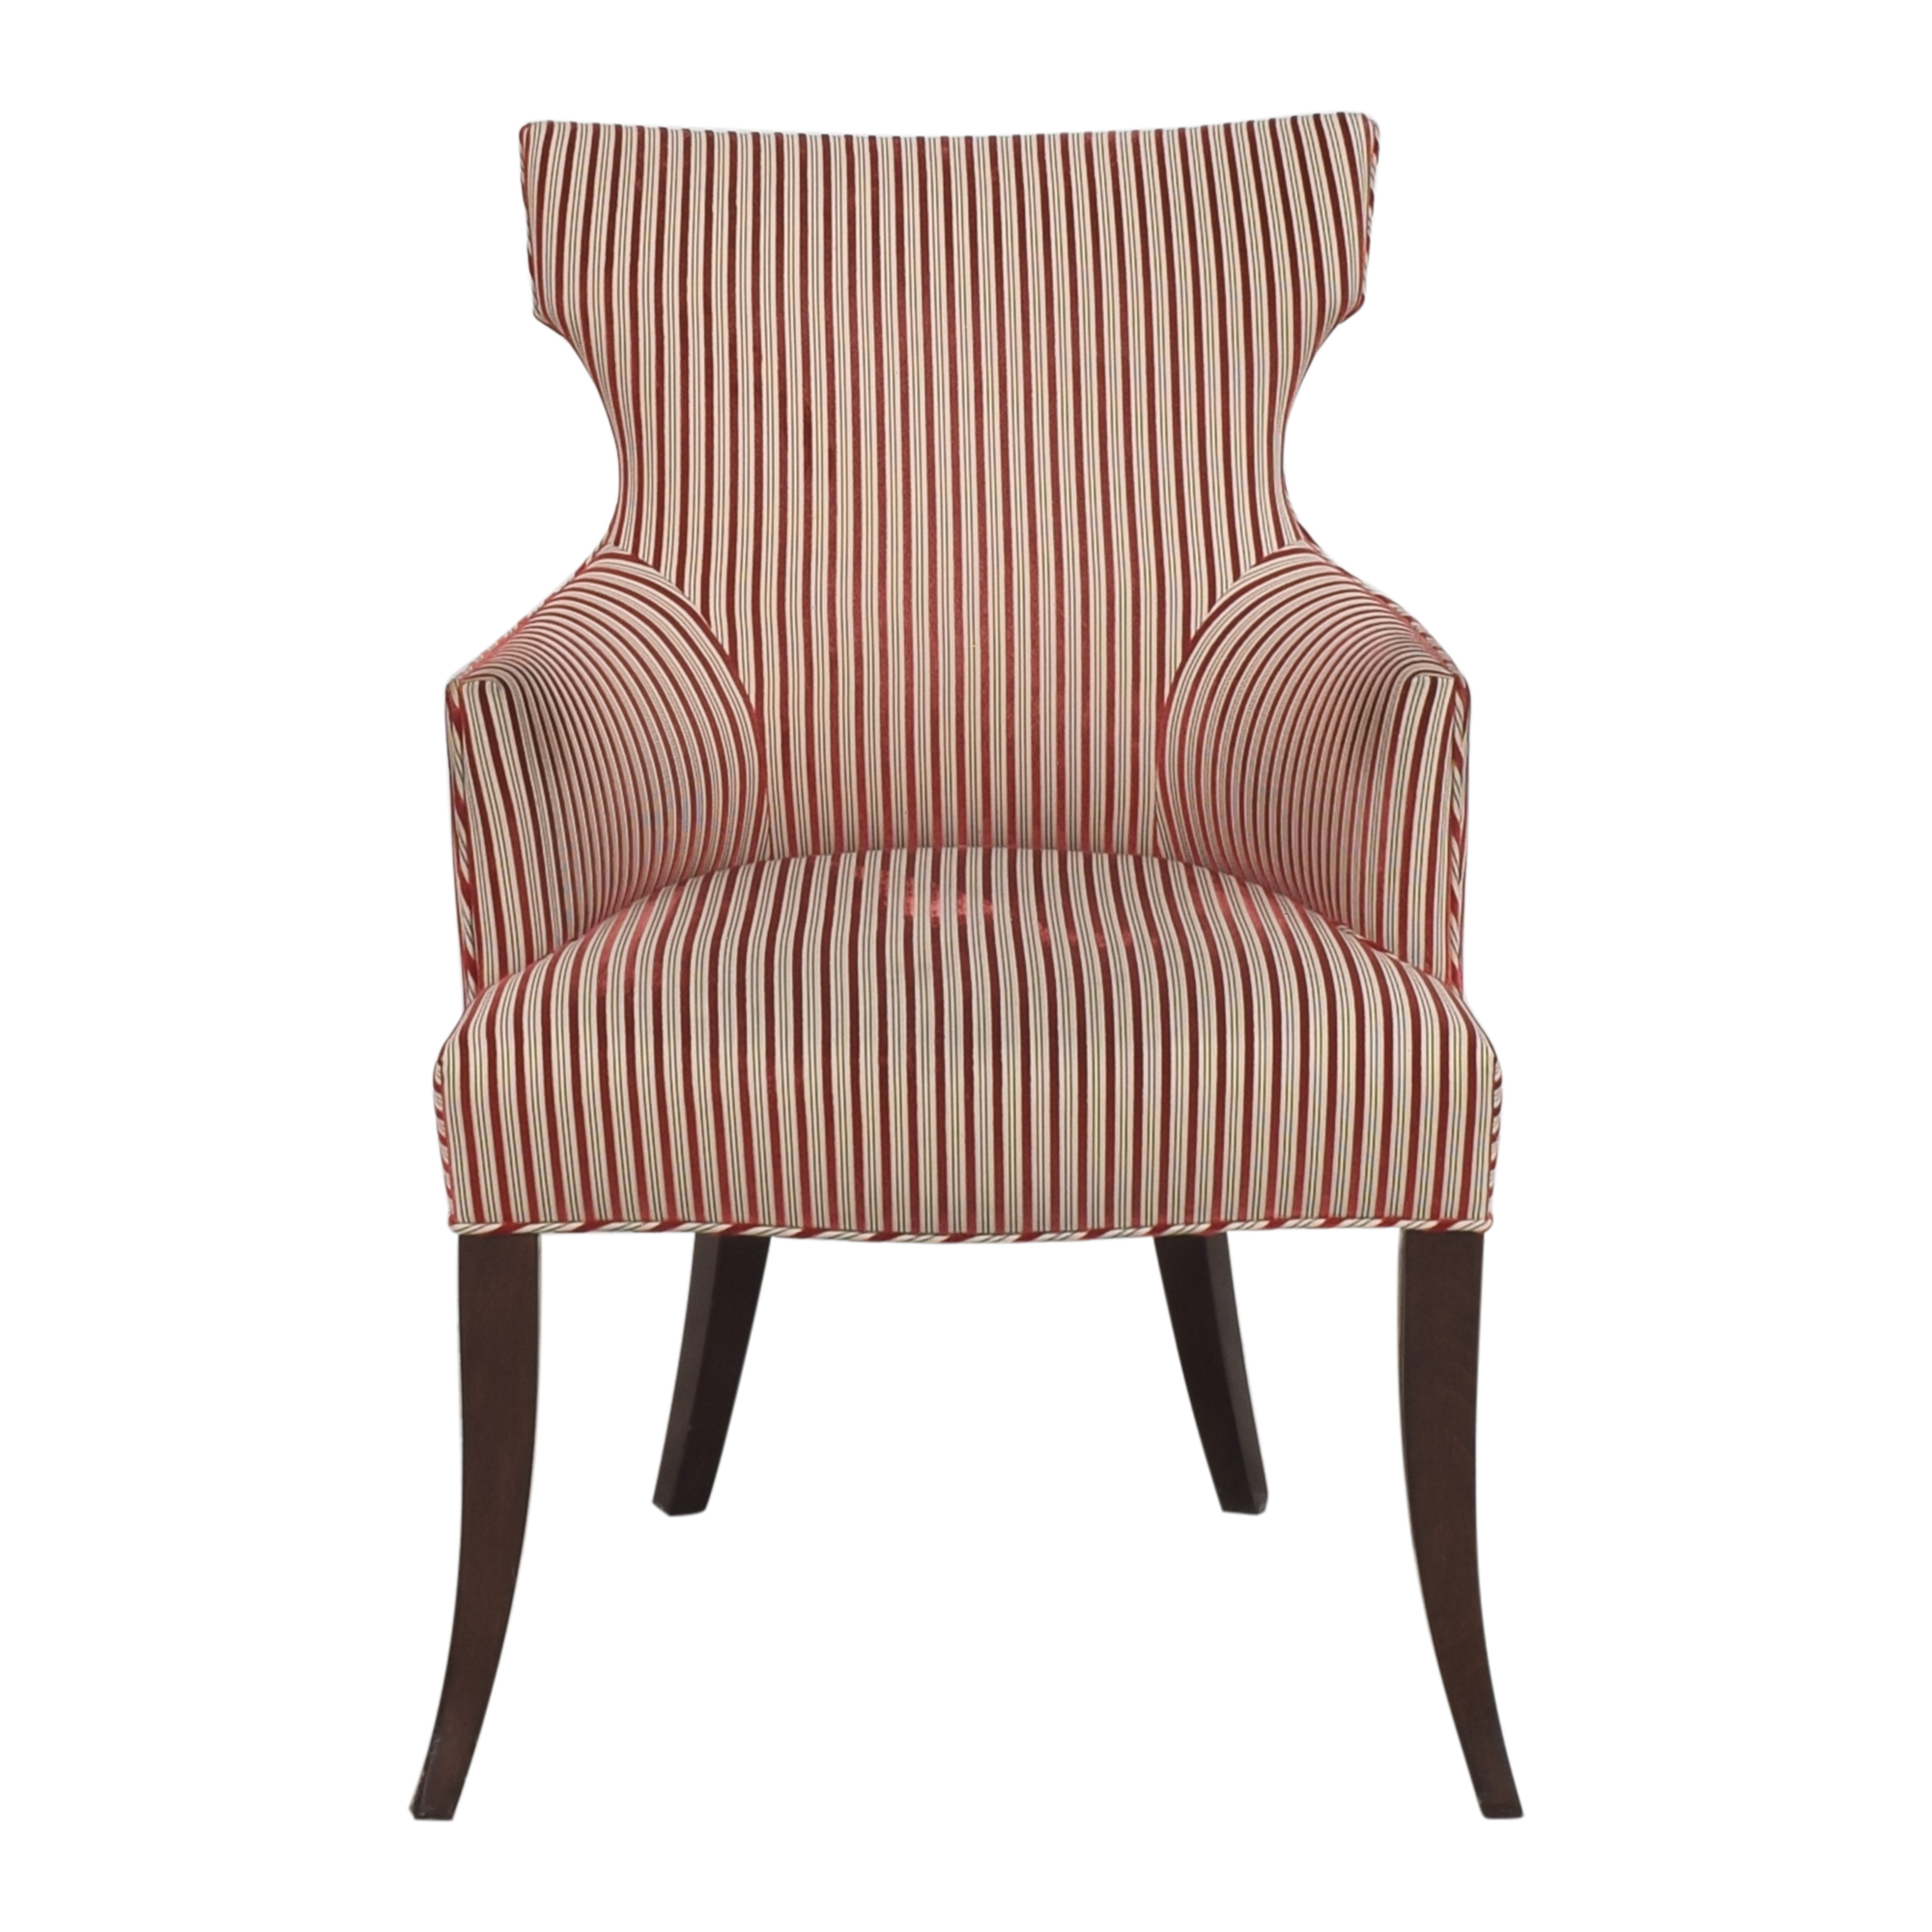 Upholstered Accent Chair red & cream